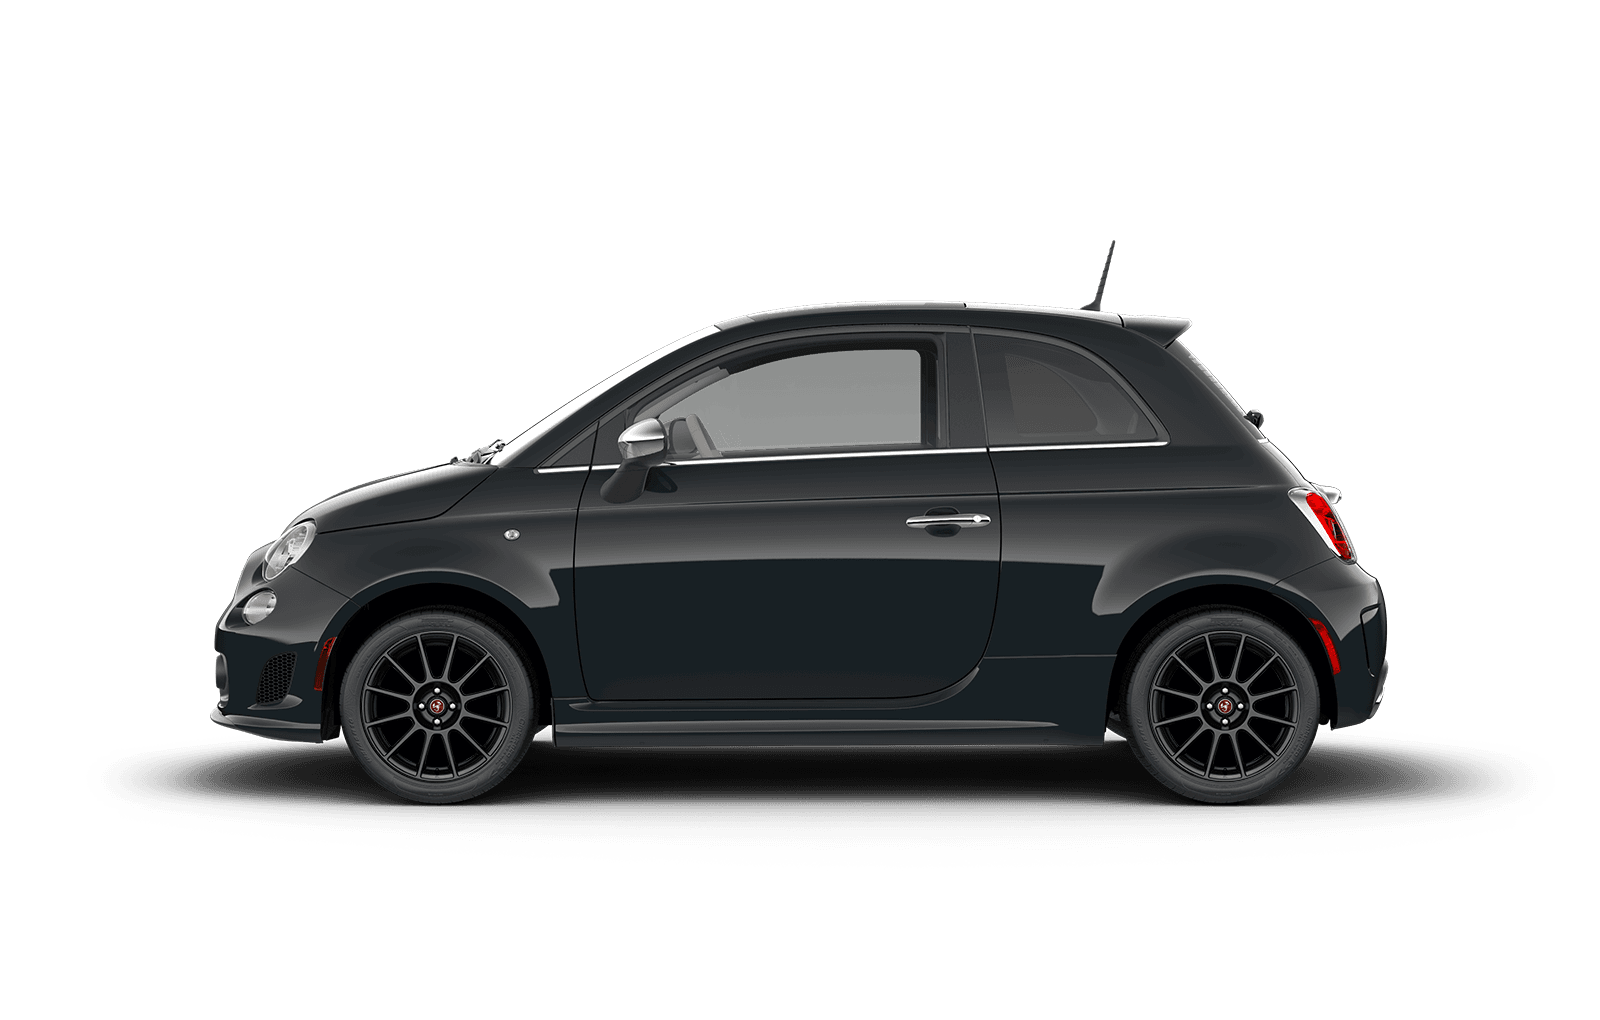 17-inch Hyper Black Forged Aluminum Wheels available on 2019 FIAT 500 Abarth